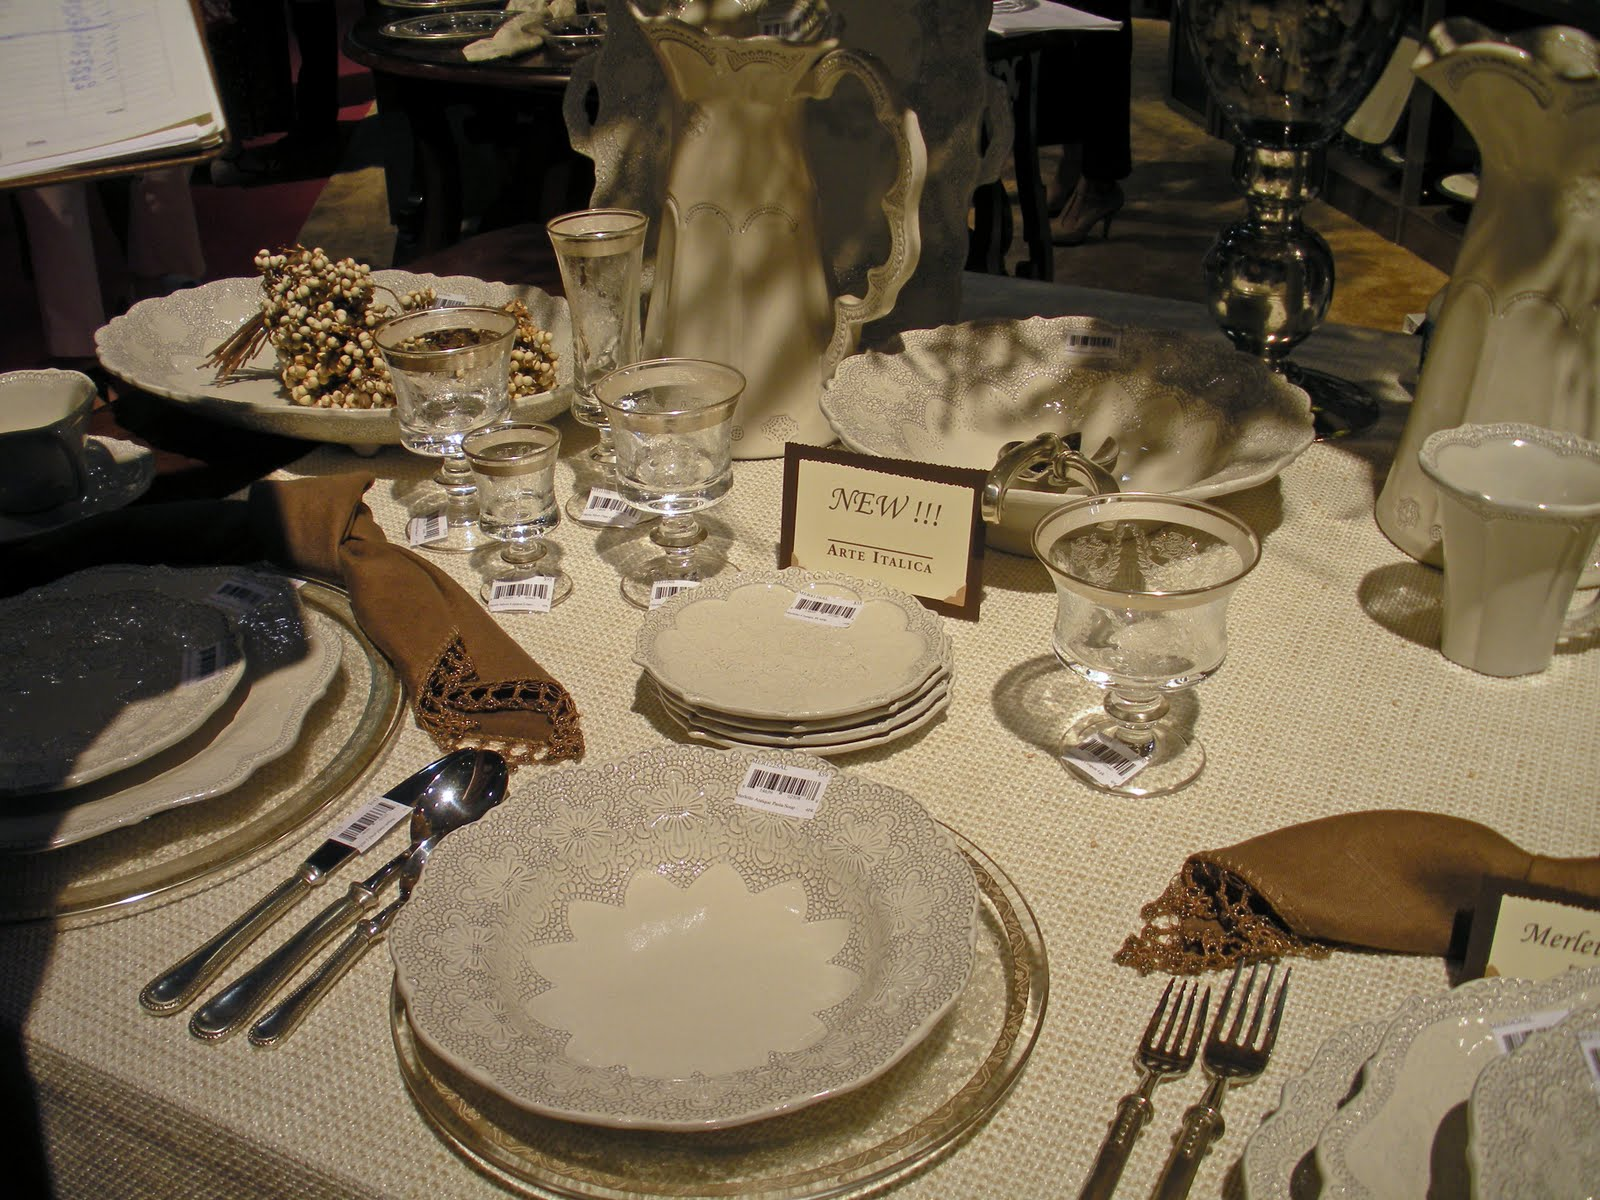 Arte Italica Stemware Beadboard Upcountry Autumn Table Settings In Nyc